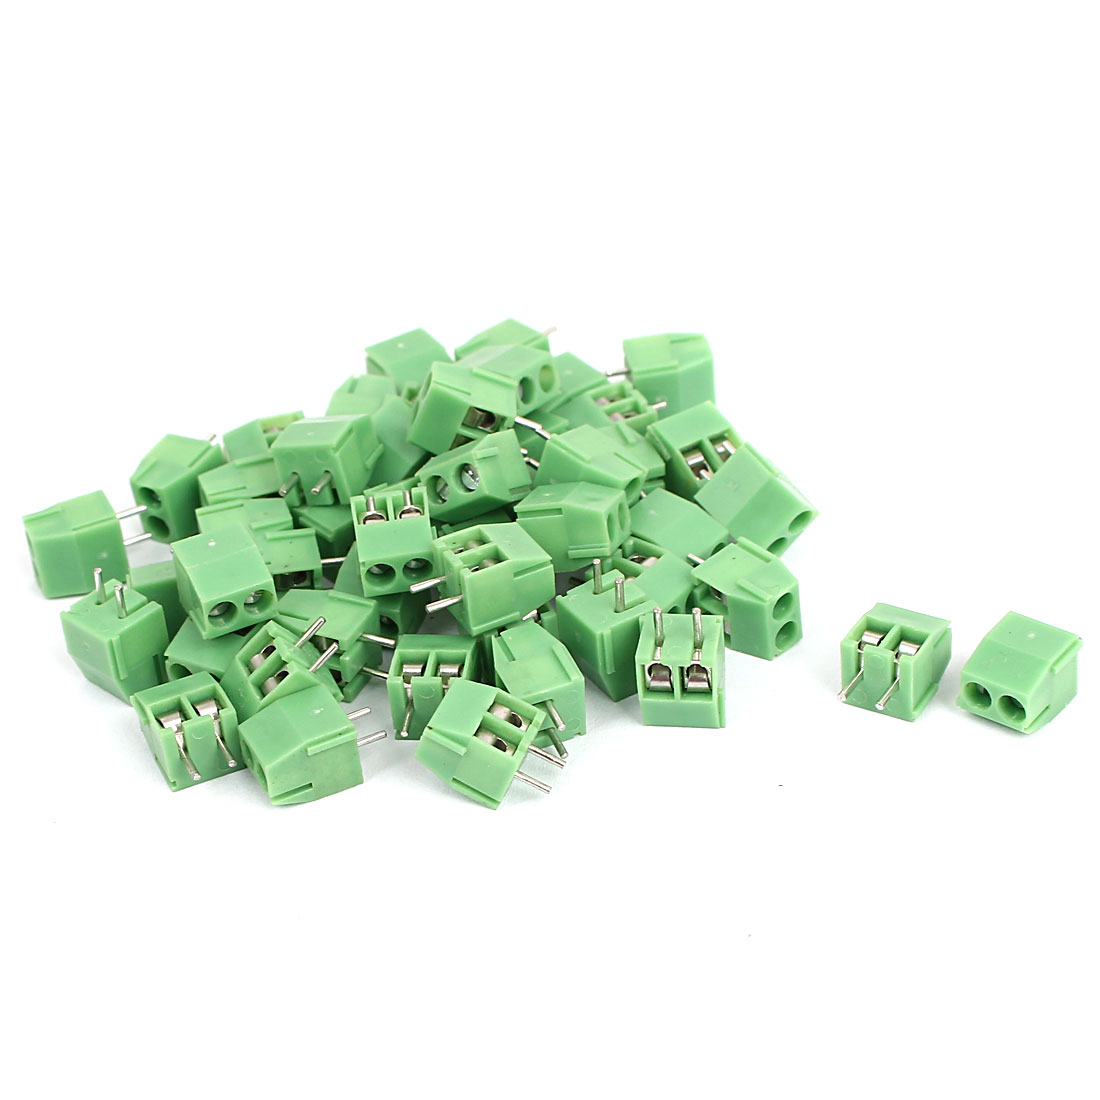 50 Pcs 2 Pin Screw Terminal Block Connector 3.5mm Pitch Panel PCB Mount Green